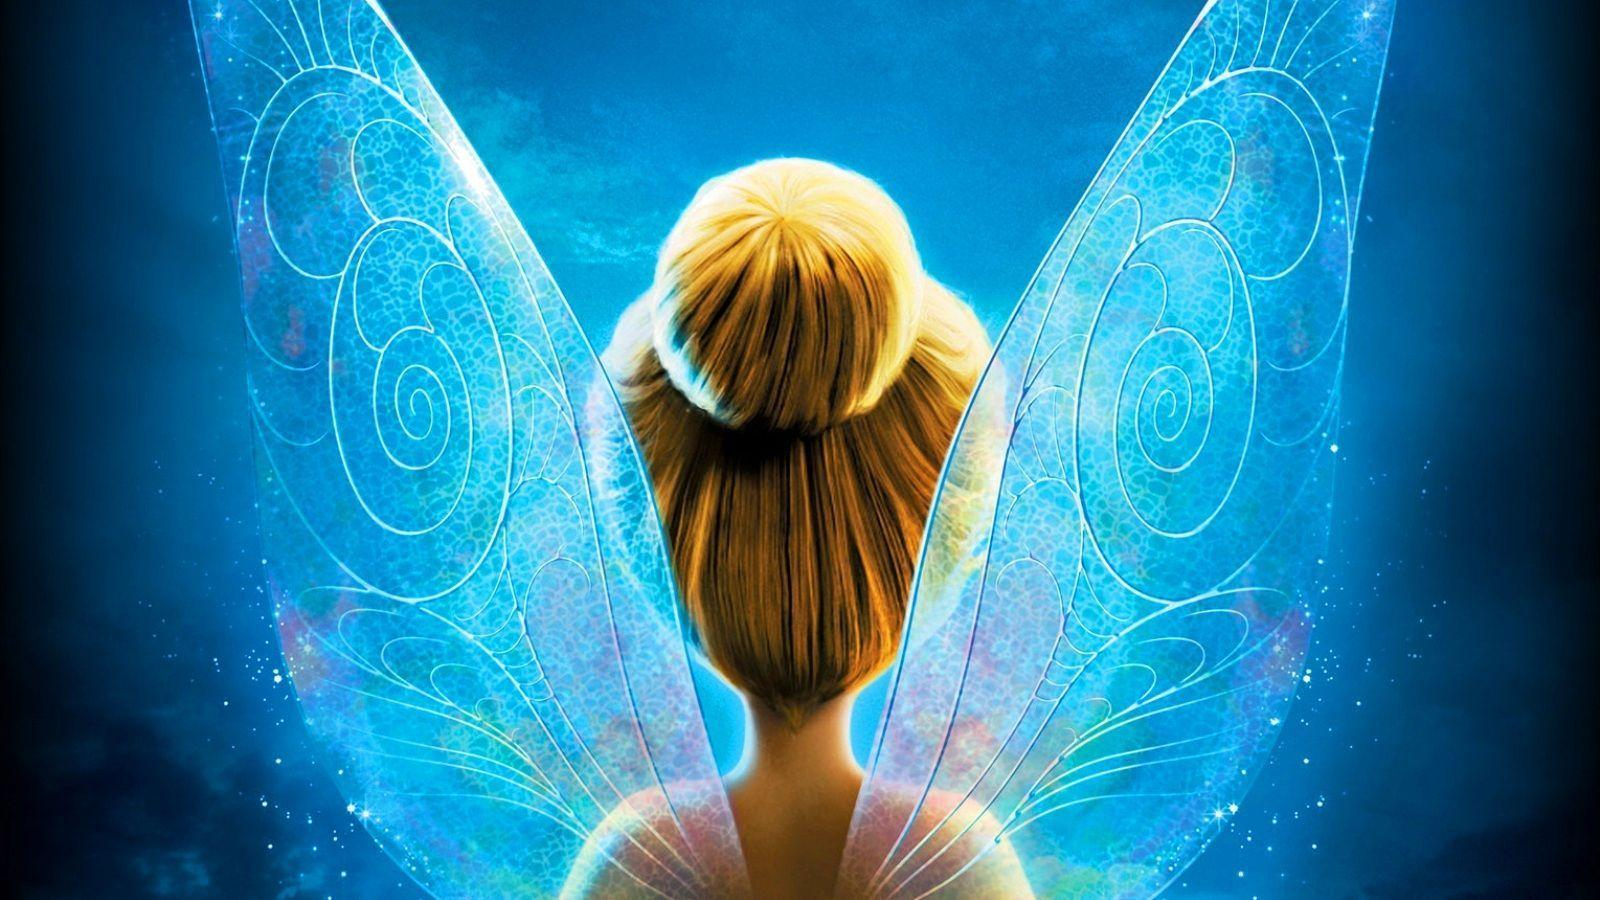 theme wallpaper tinker bell - photo #2